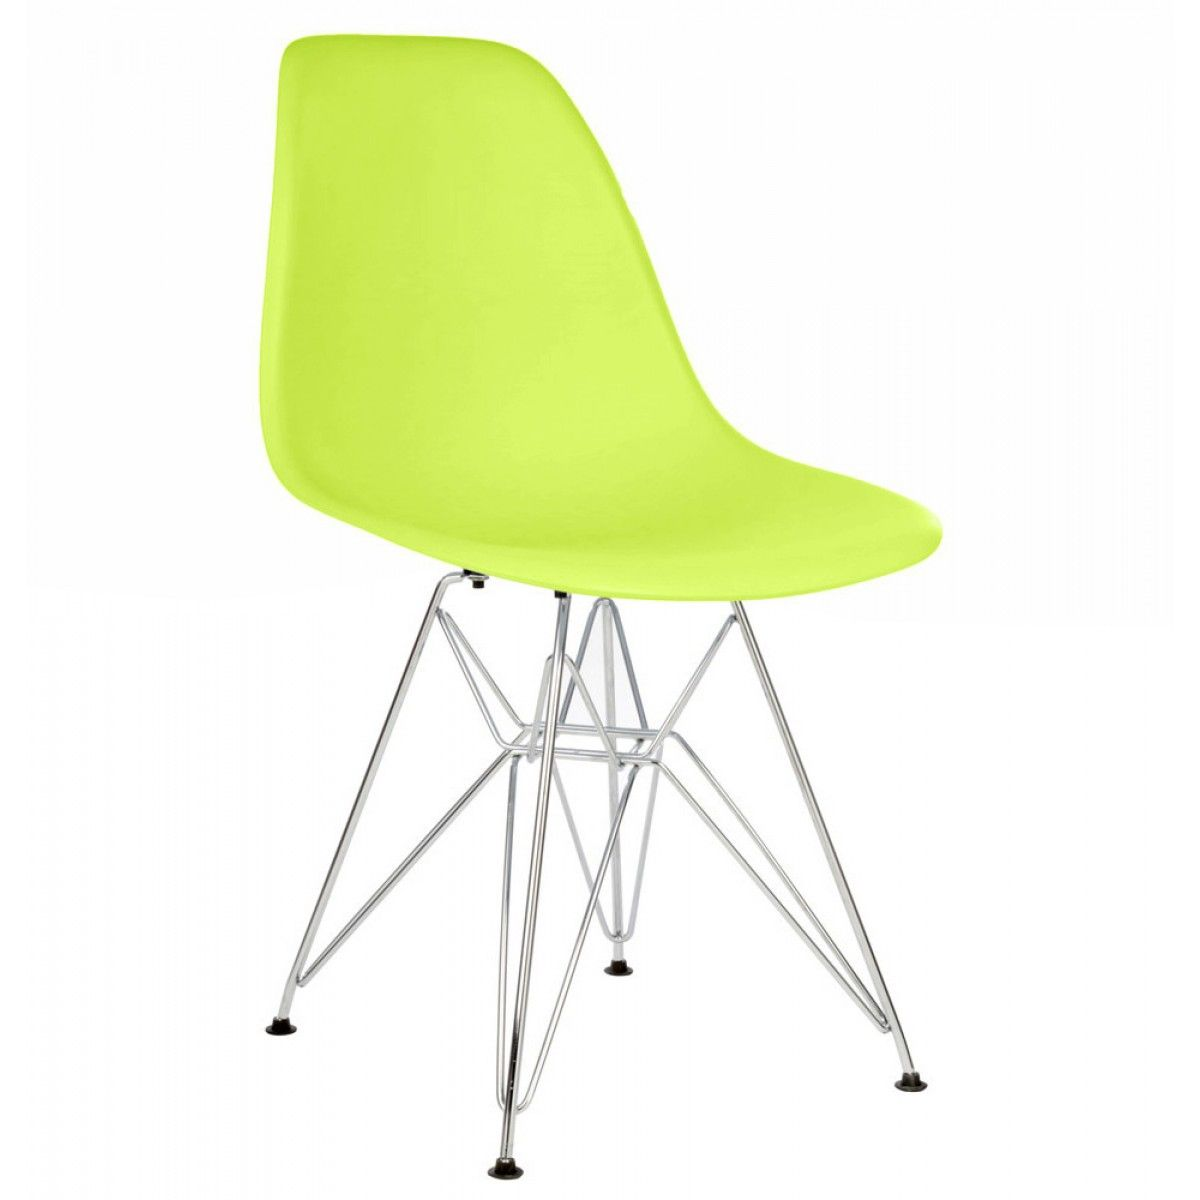 Eames Style Dsr Molded Lime Green Plastic Dining Shell Chair With Steel Eiffel Legs Solid Wood Dining Chairs Modern Side Chairs Side Chairs